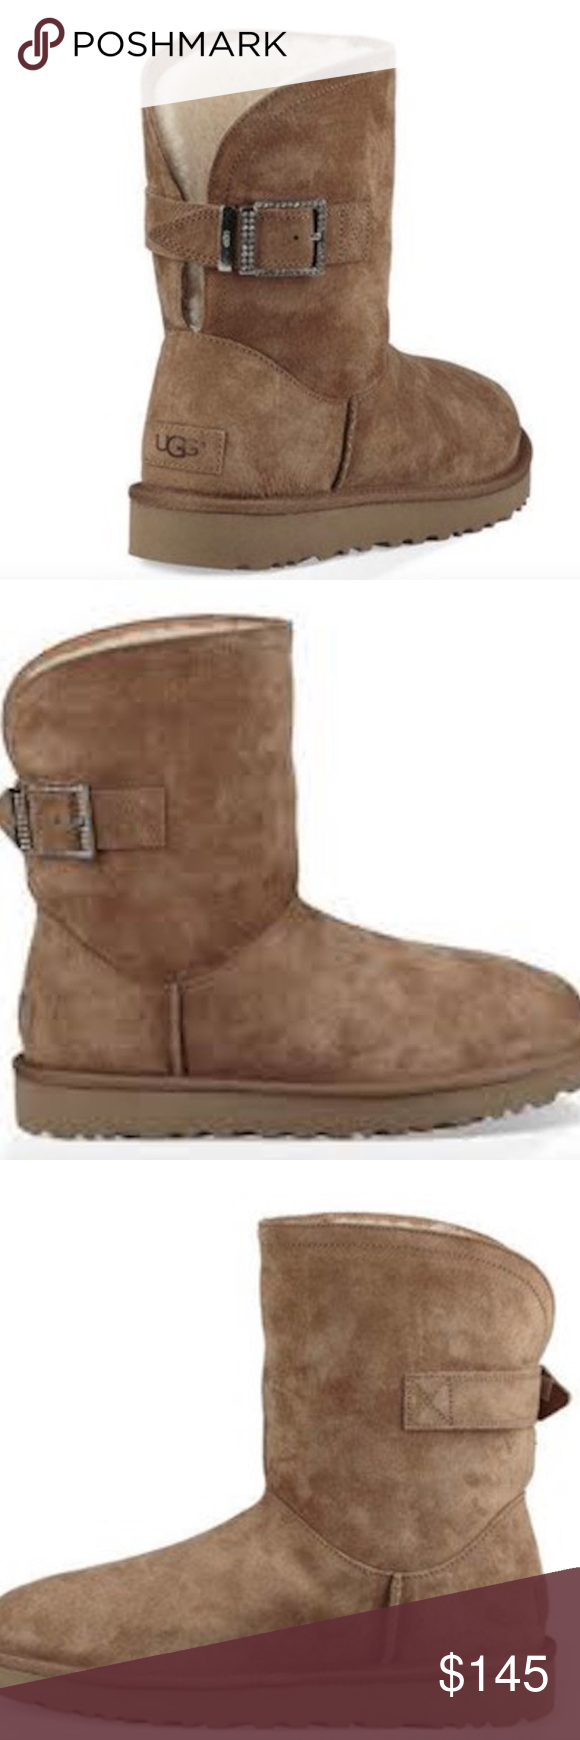 3ae88320ecc NWT UGG Australia Remora Buckle Boots AUTHENTIC / NEW WITH TAGS ...